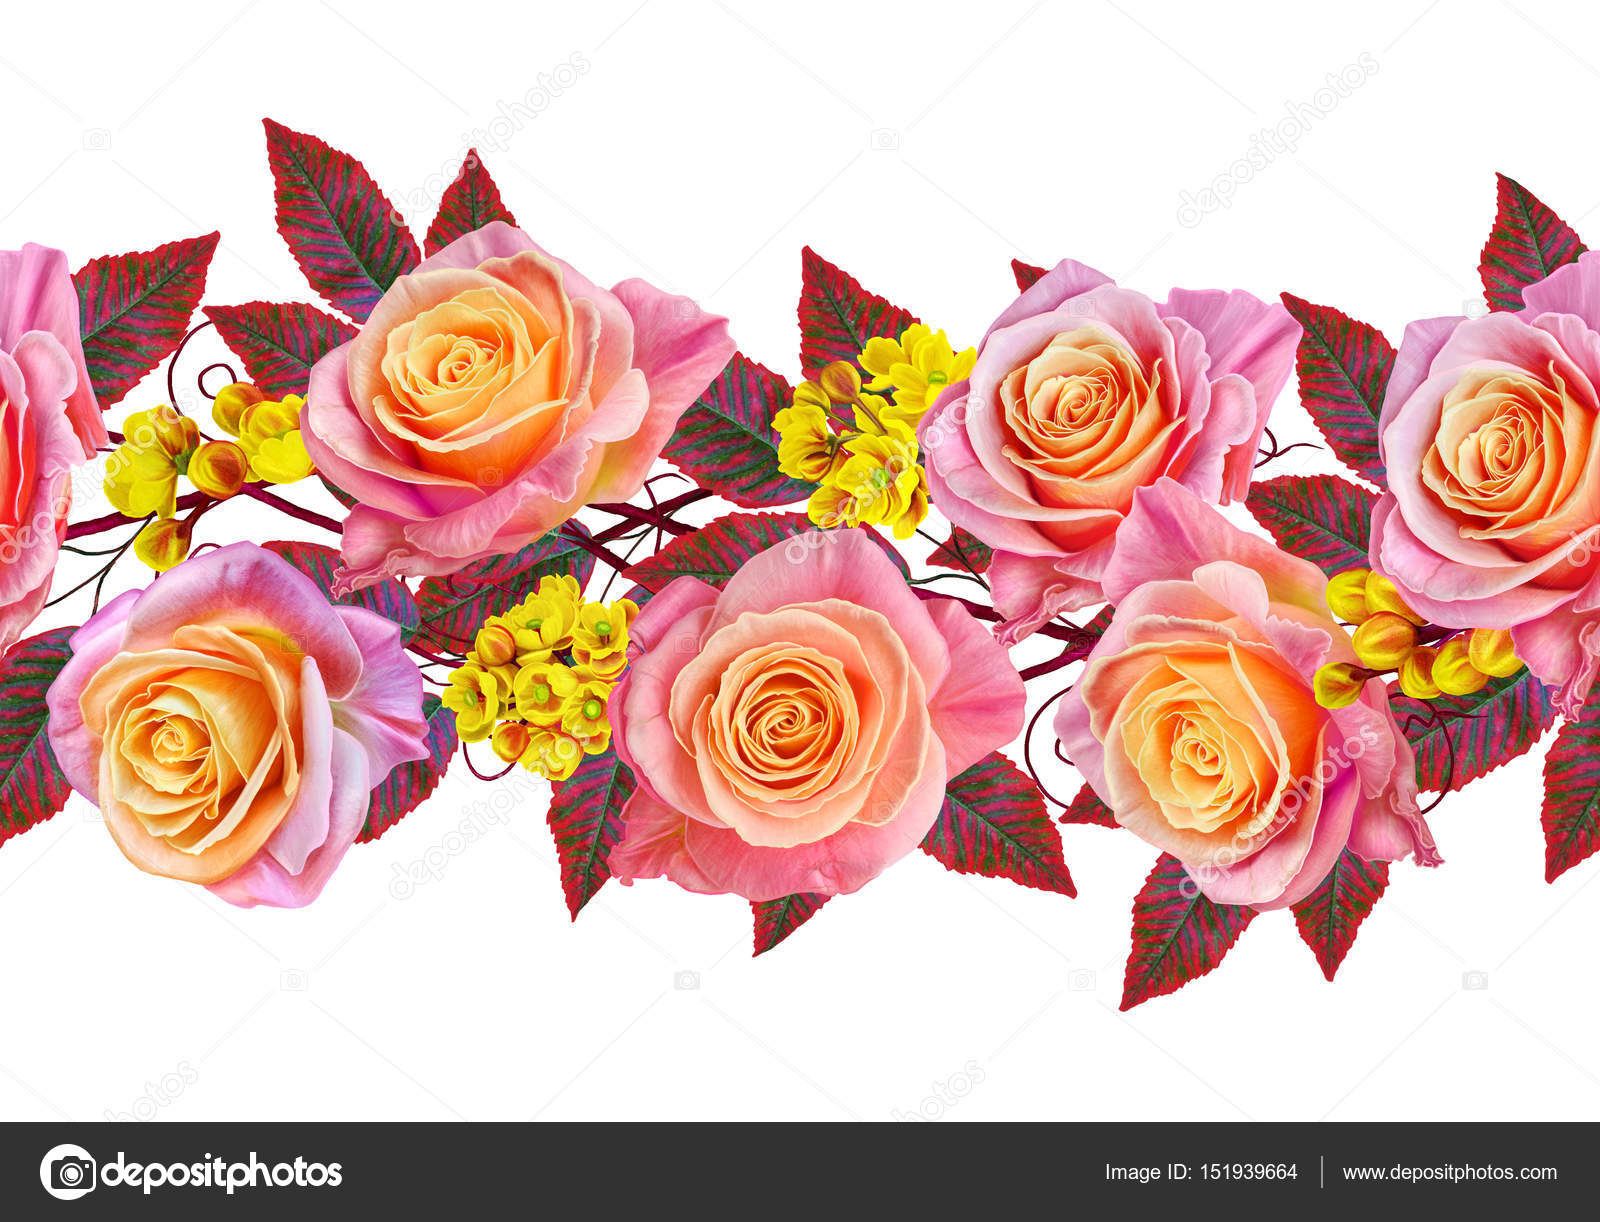 Garland A Bouquet Of Delicate Pink And Yellow Roses Bright Red